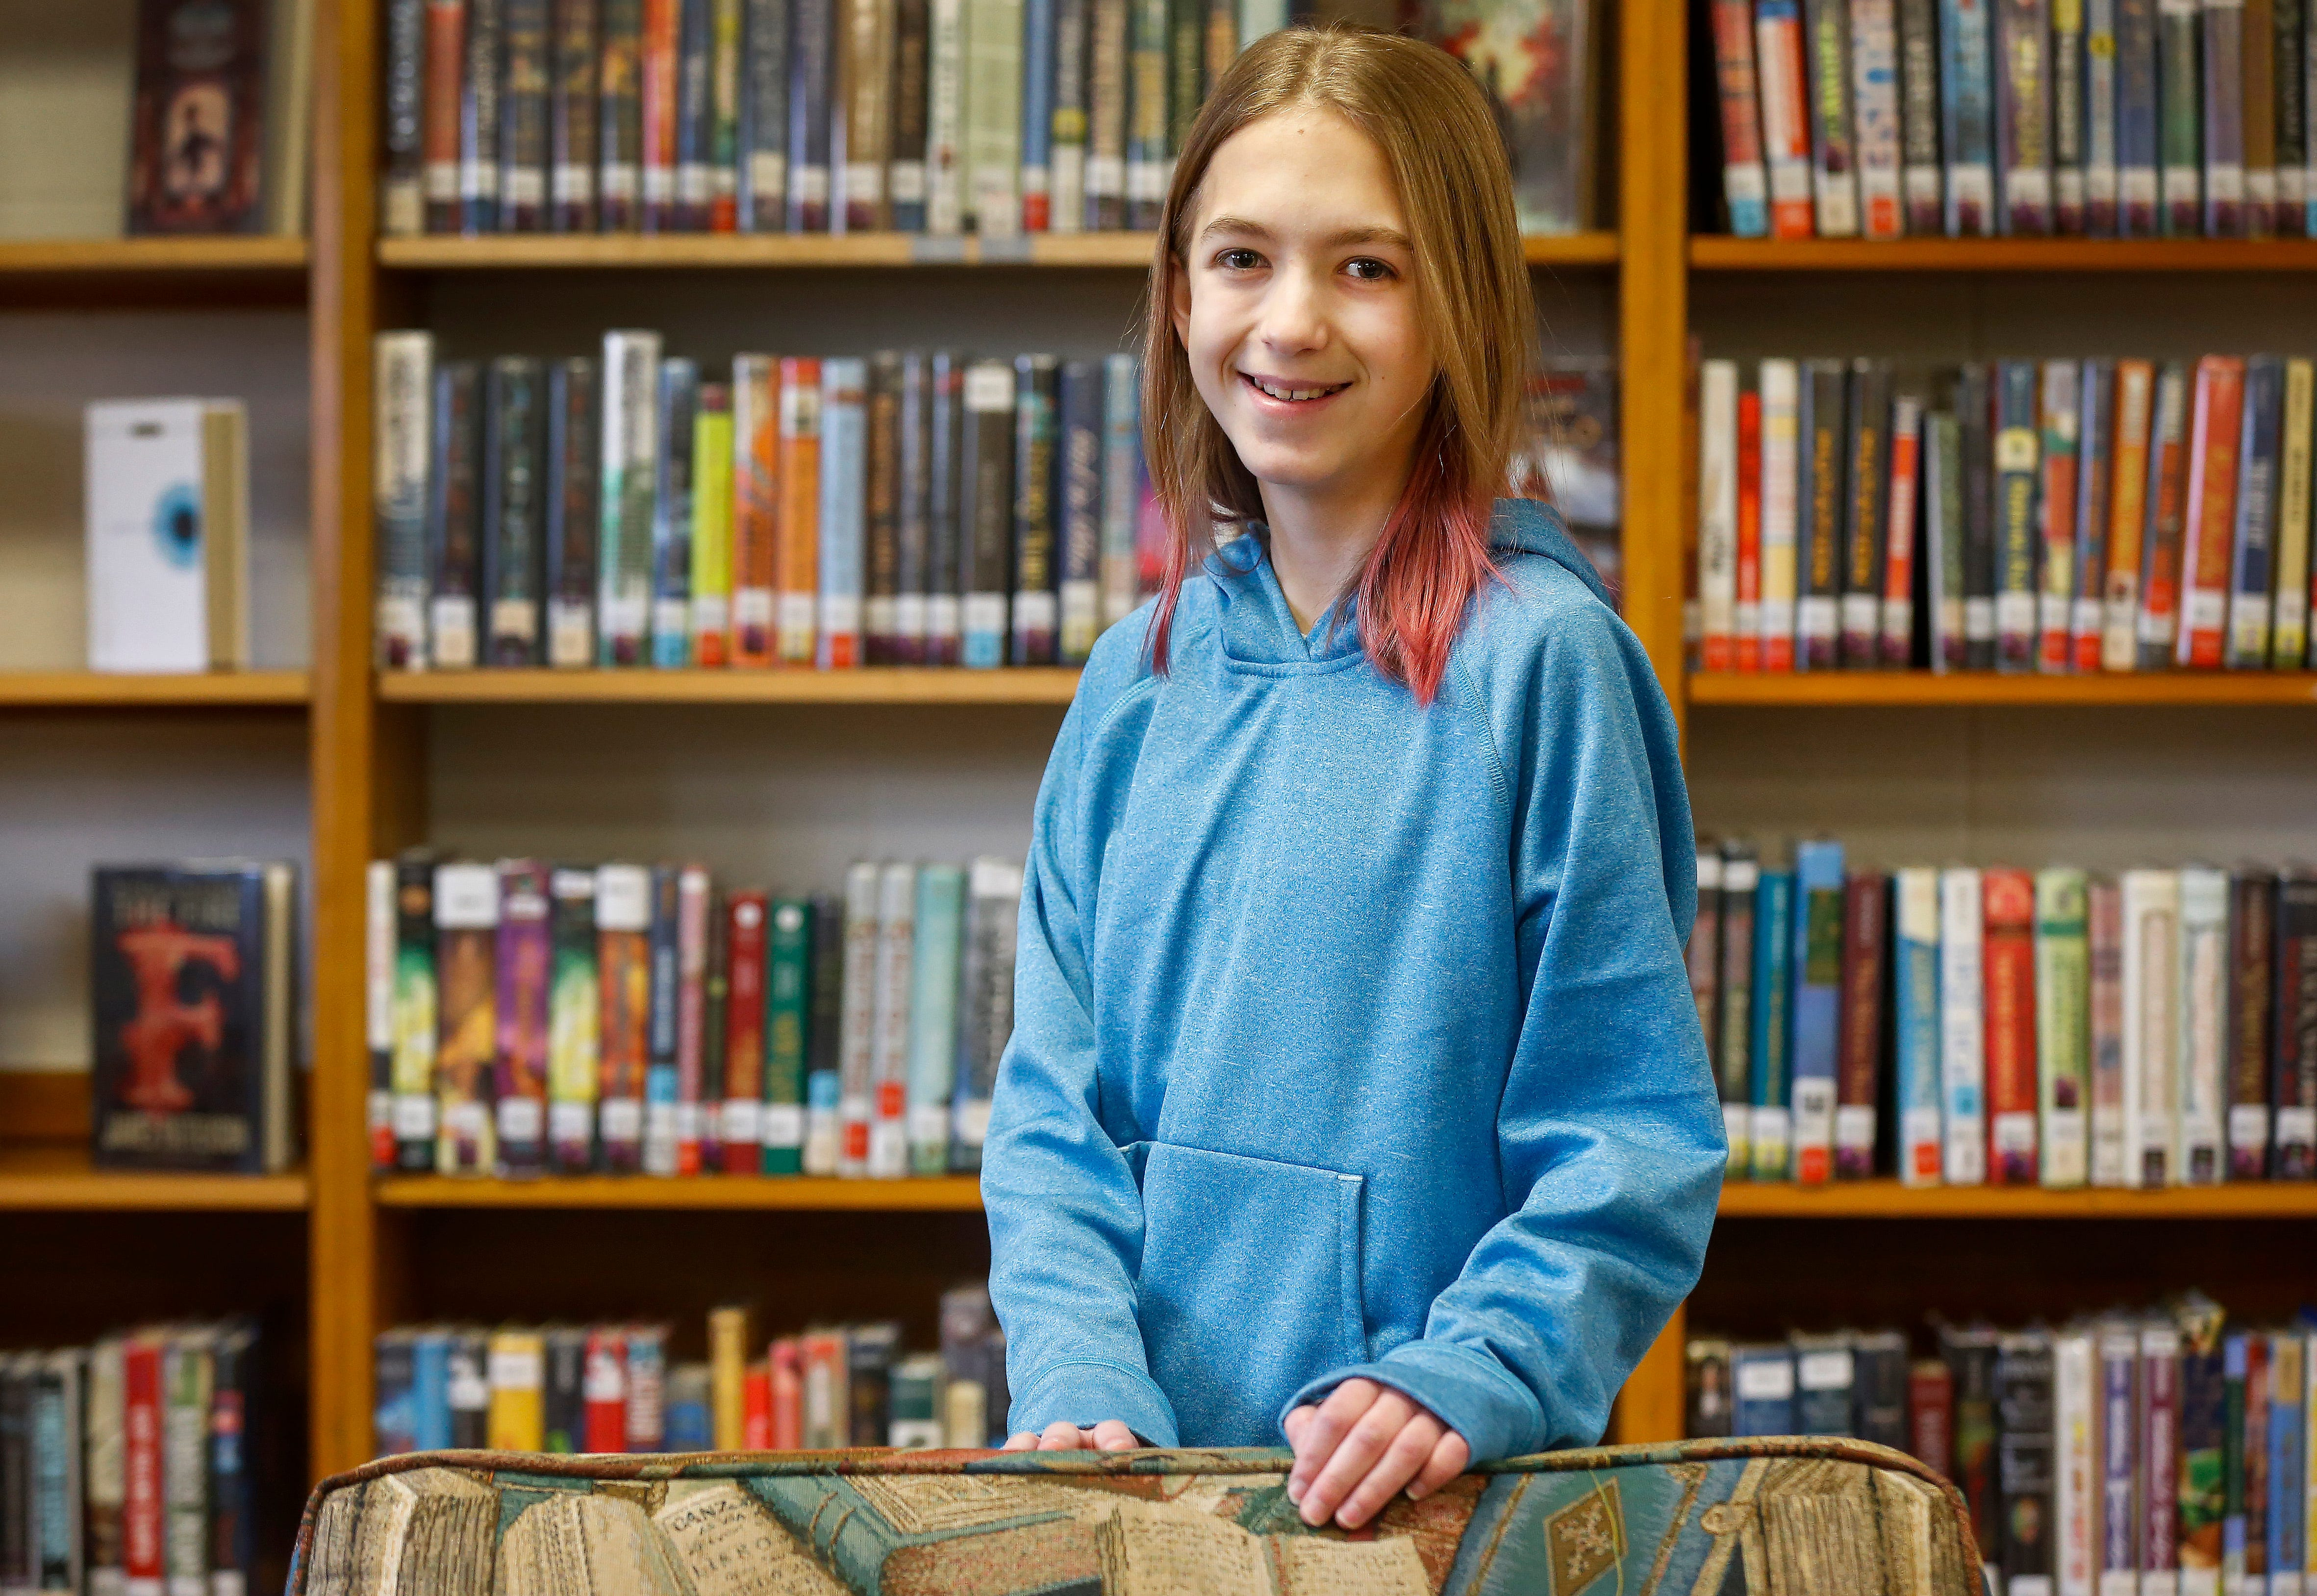 Aria Thomas, a student at Pleasant View Middle School, wrote a short essay that won her a trip to visit Warner Brothers Studio in Los Angeles in the fall.